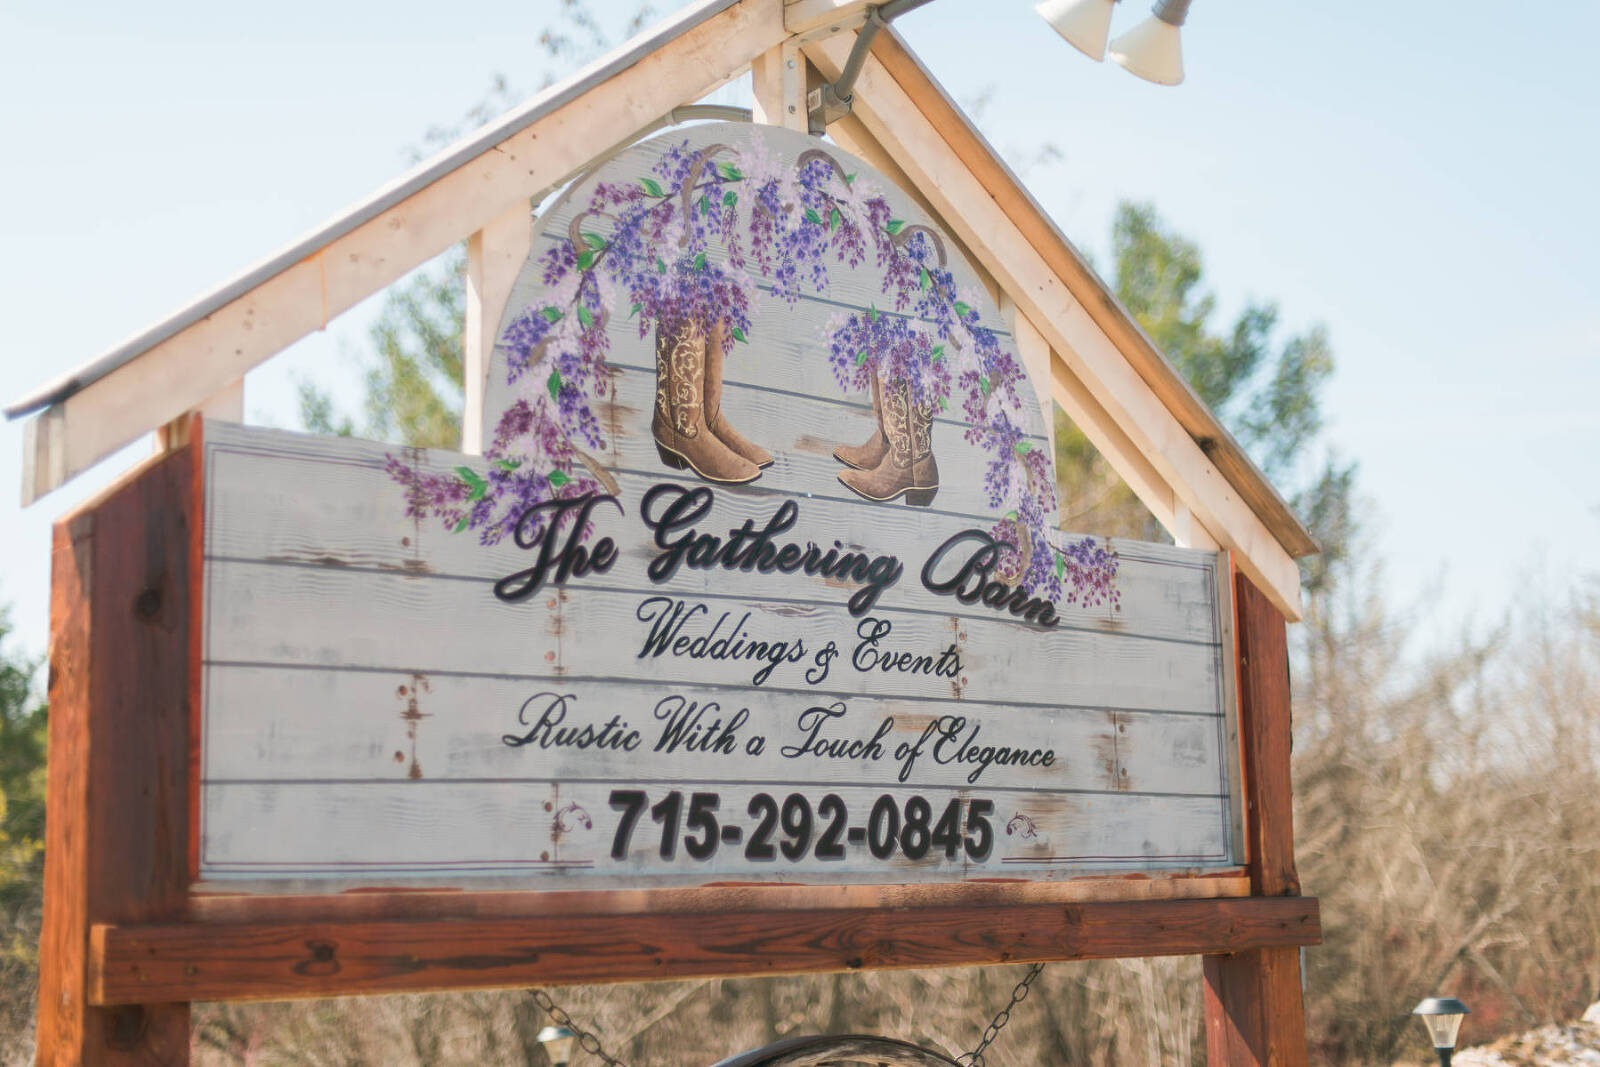 The Gathering Barn - Welcome